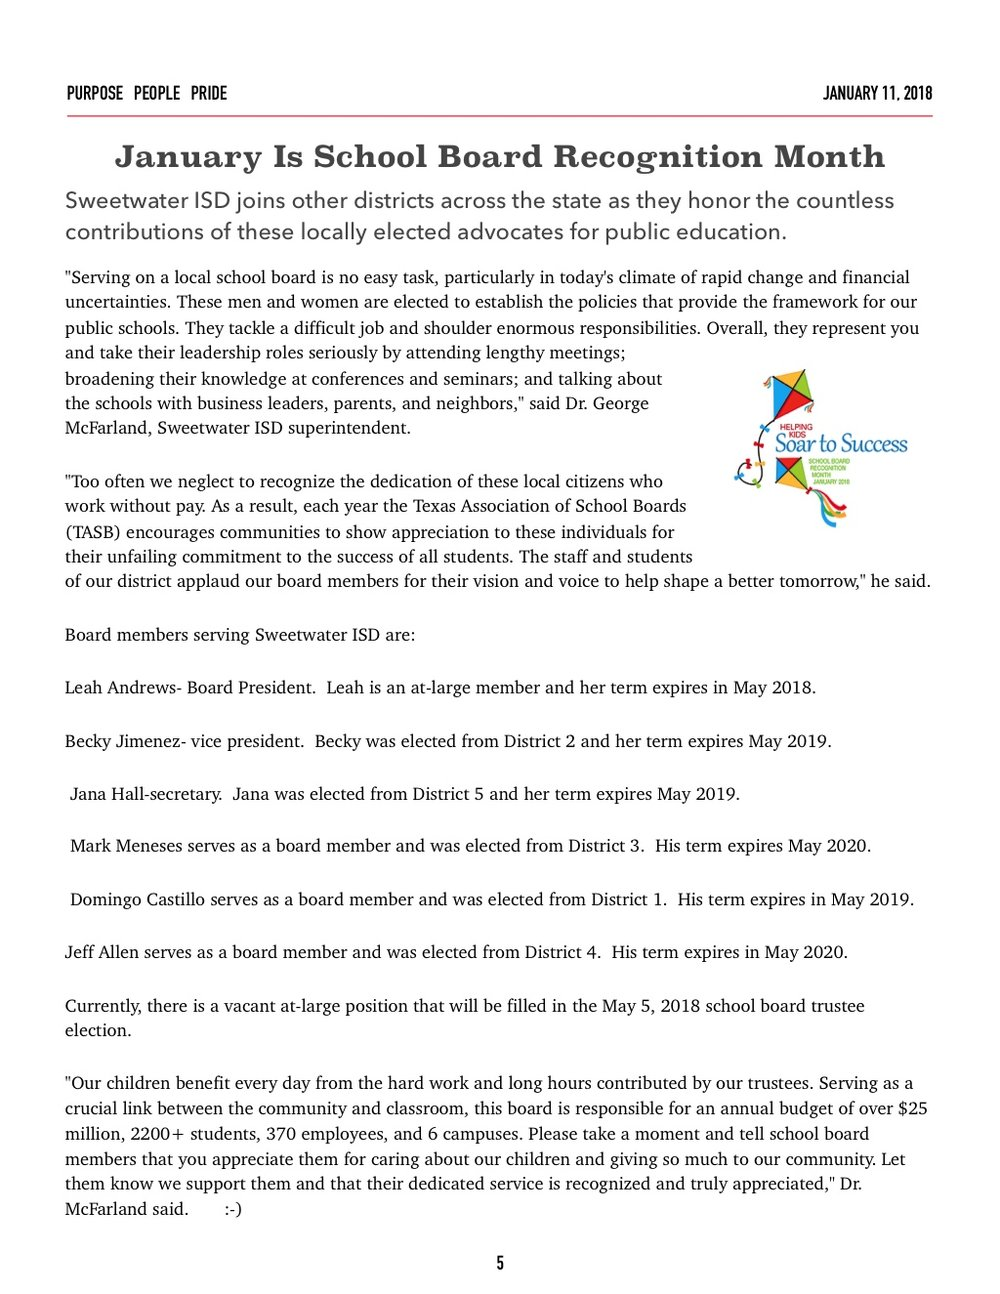 SISD Newsletter January 2018 copy-5.jpg